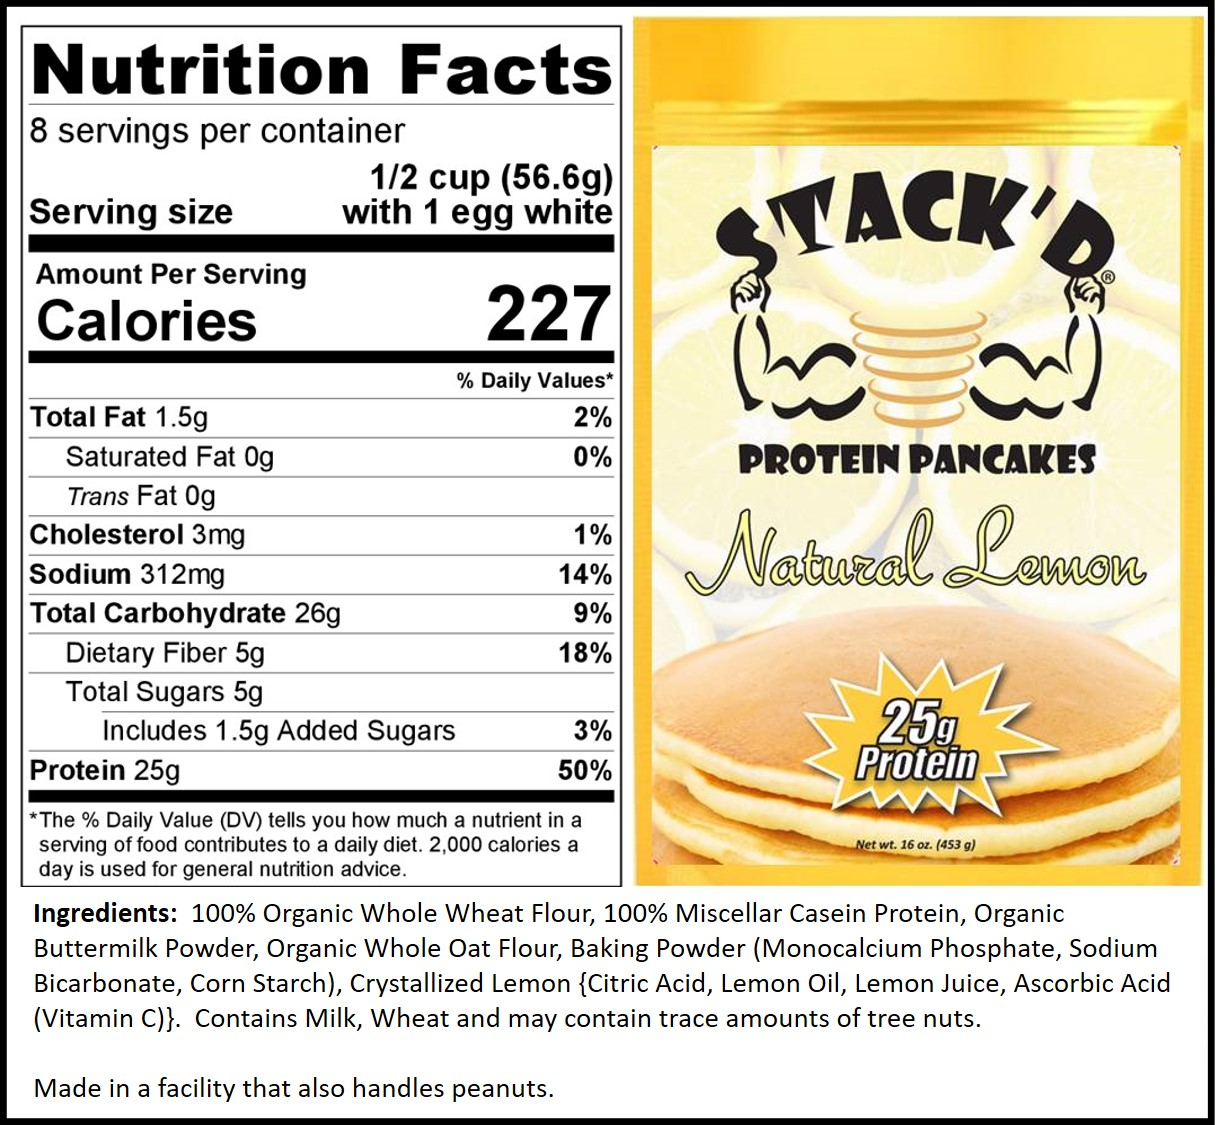 Egg White Nutrition Facts 1 Cup